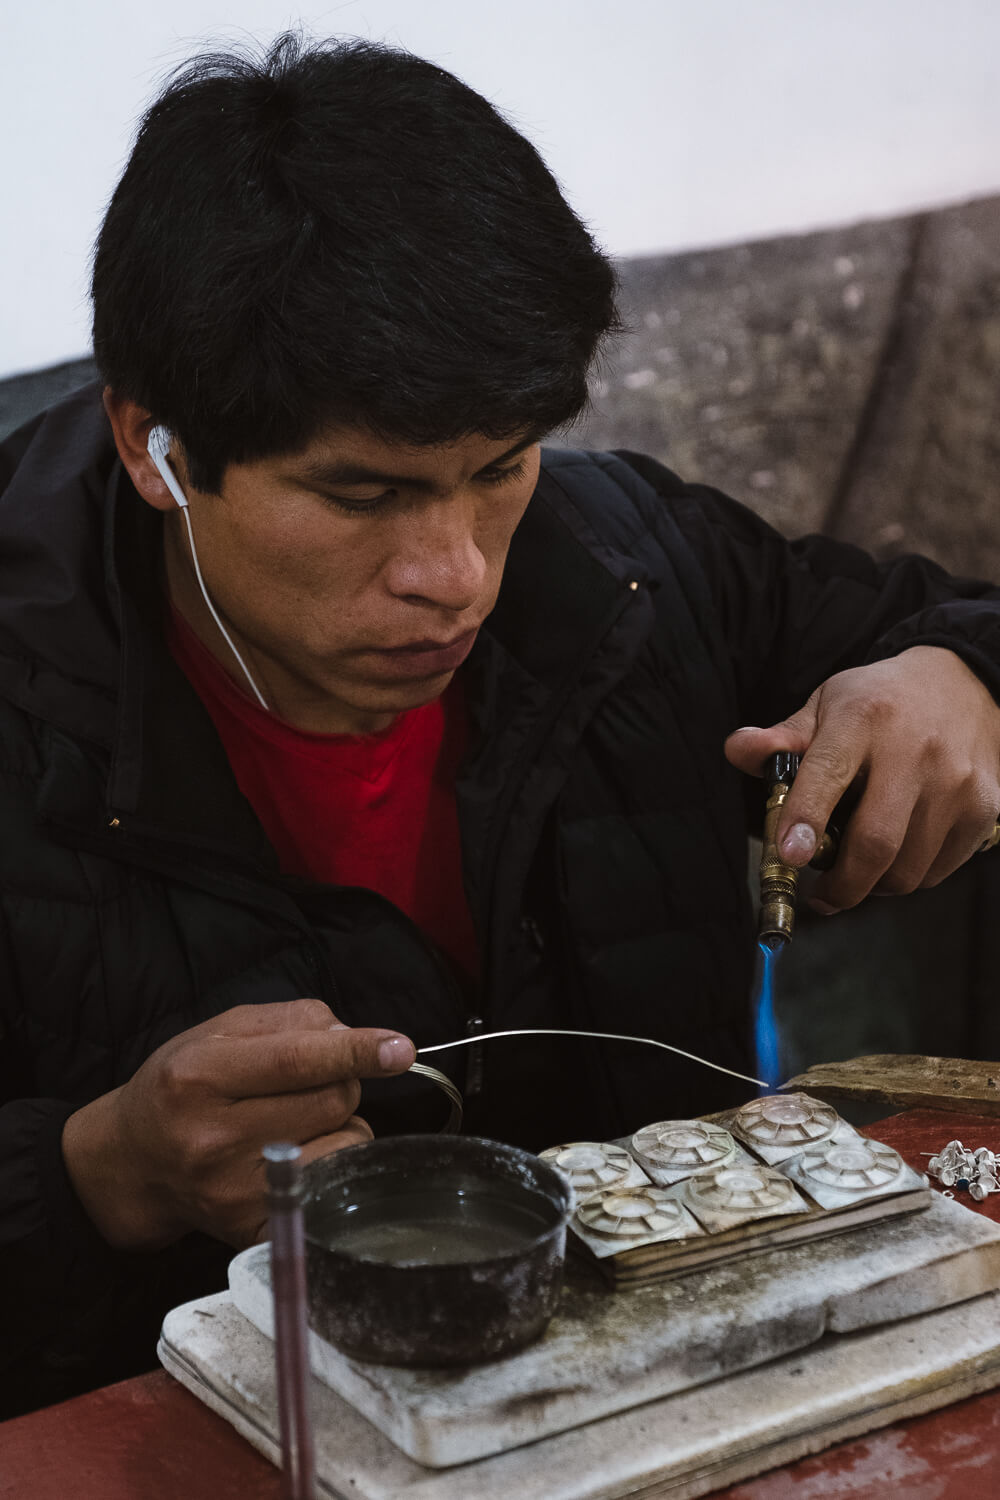 """Man makes silver jewelry at the Pisac Market, Cusco. Travel photography and guide by © Natasha Lequepeys for """"And Then I Met Yoko"""". #cusco #peru #photoblog #travelblog #peruitinerary #cuscoitinerary"""